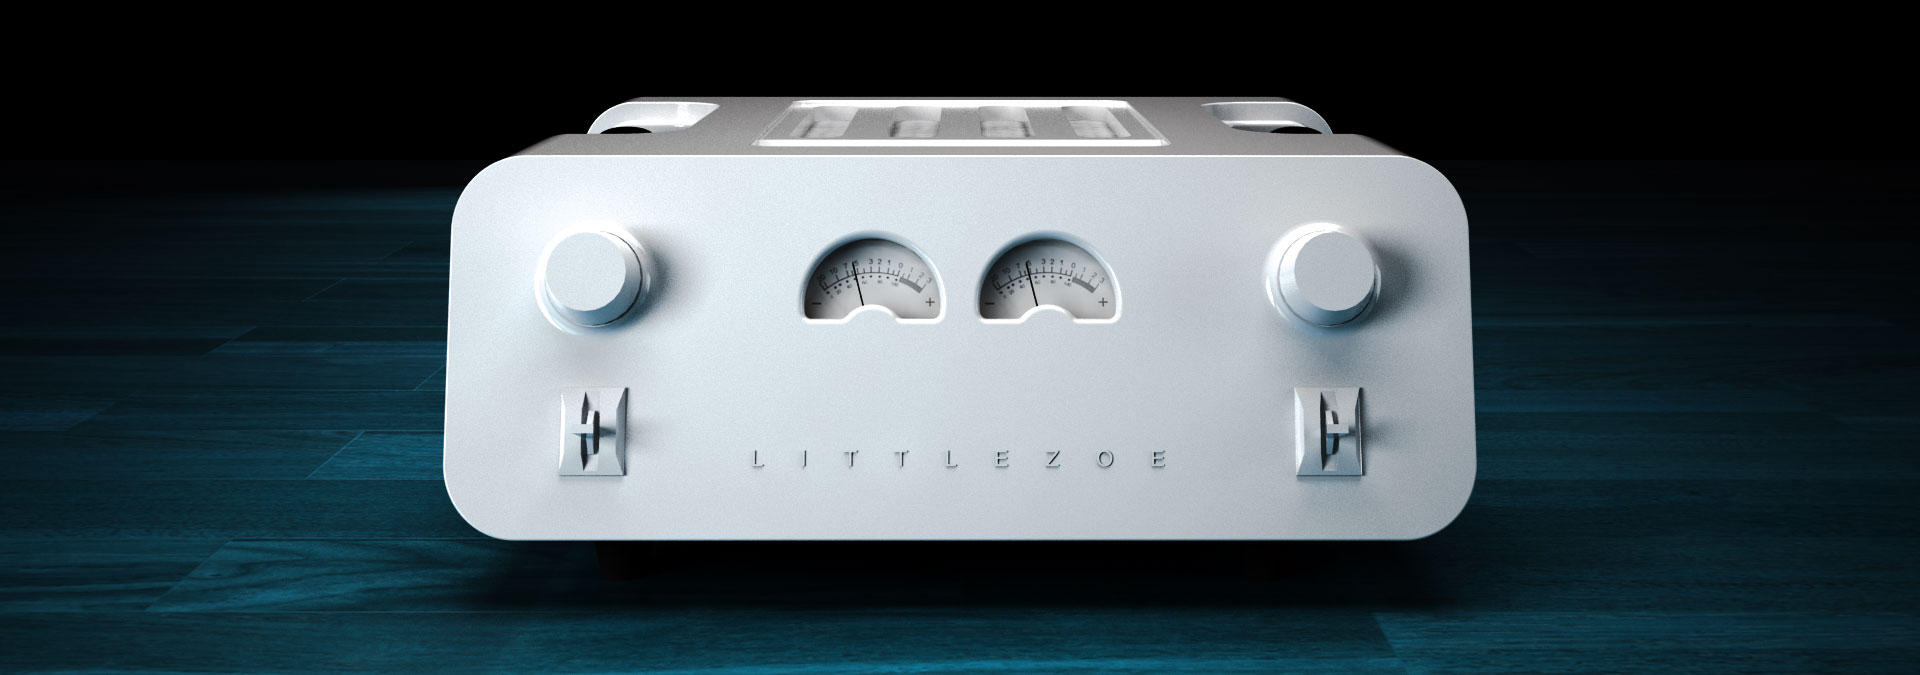 Innovative Amplifier LittleZoe launches at HIGH END Munich 2018